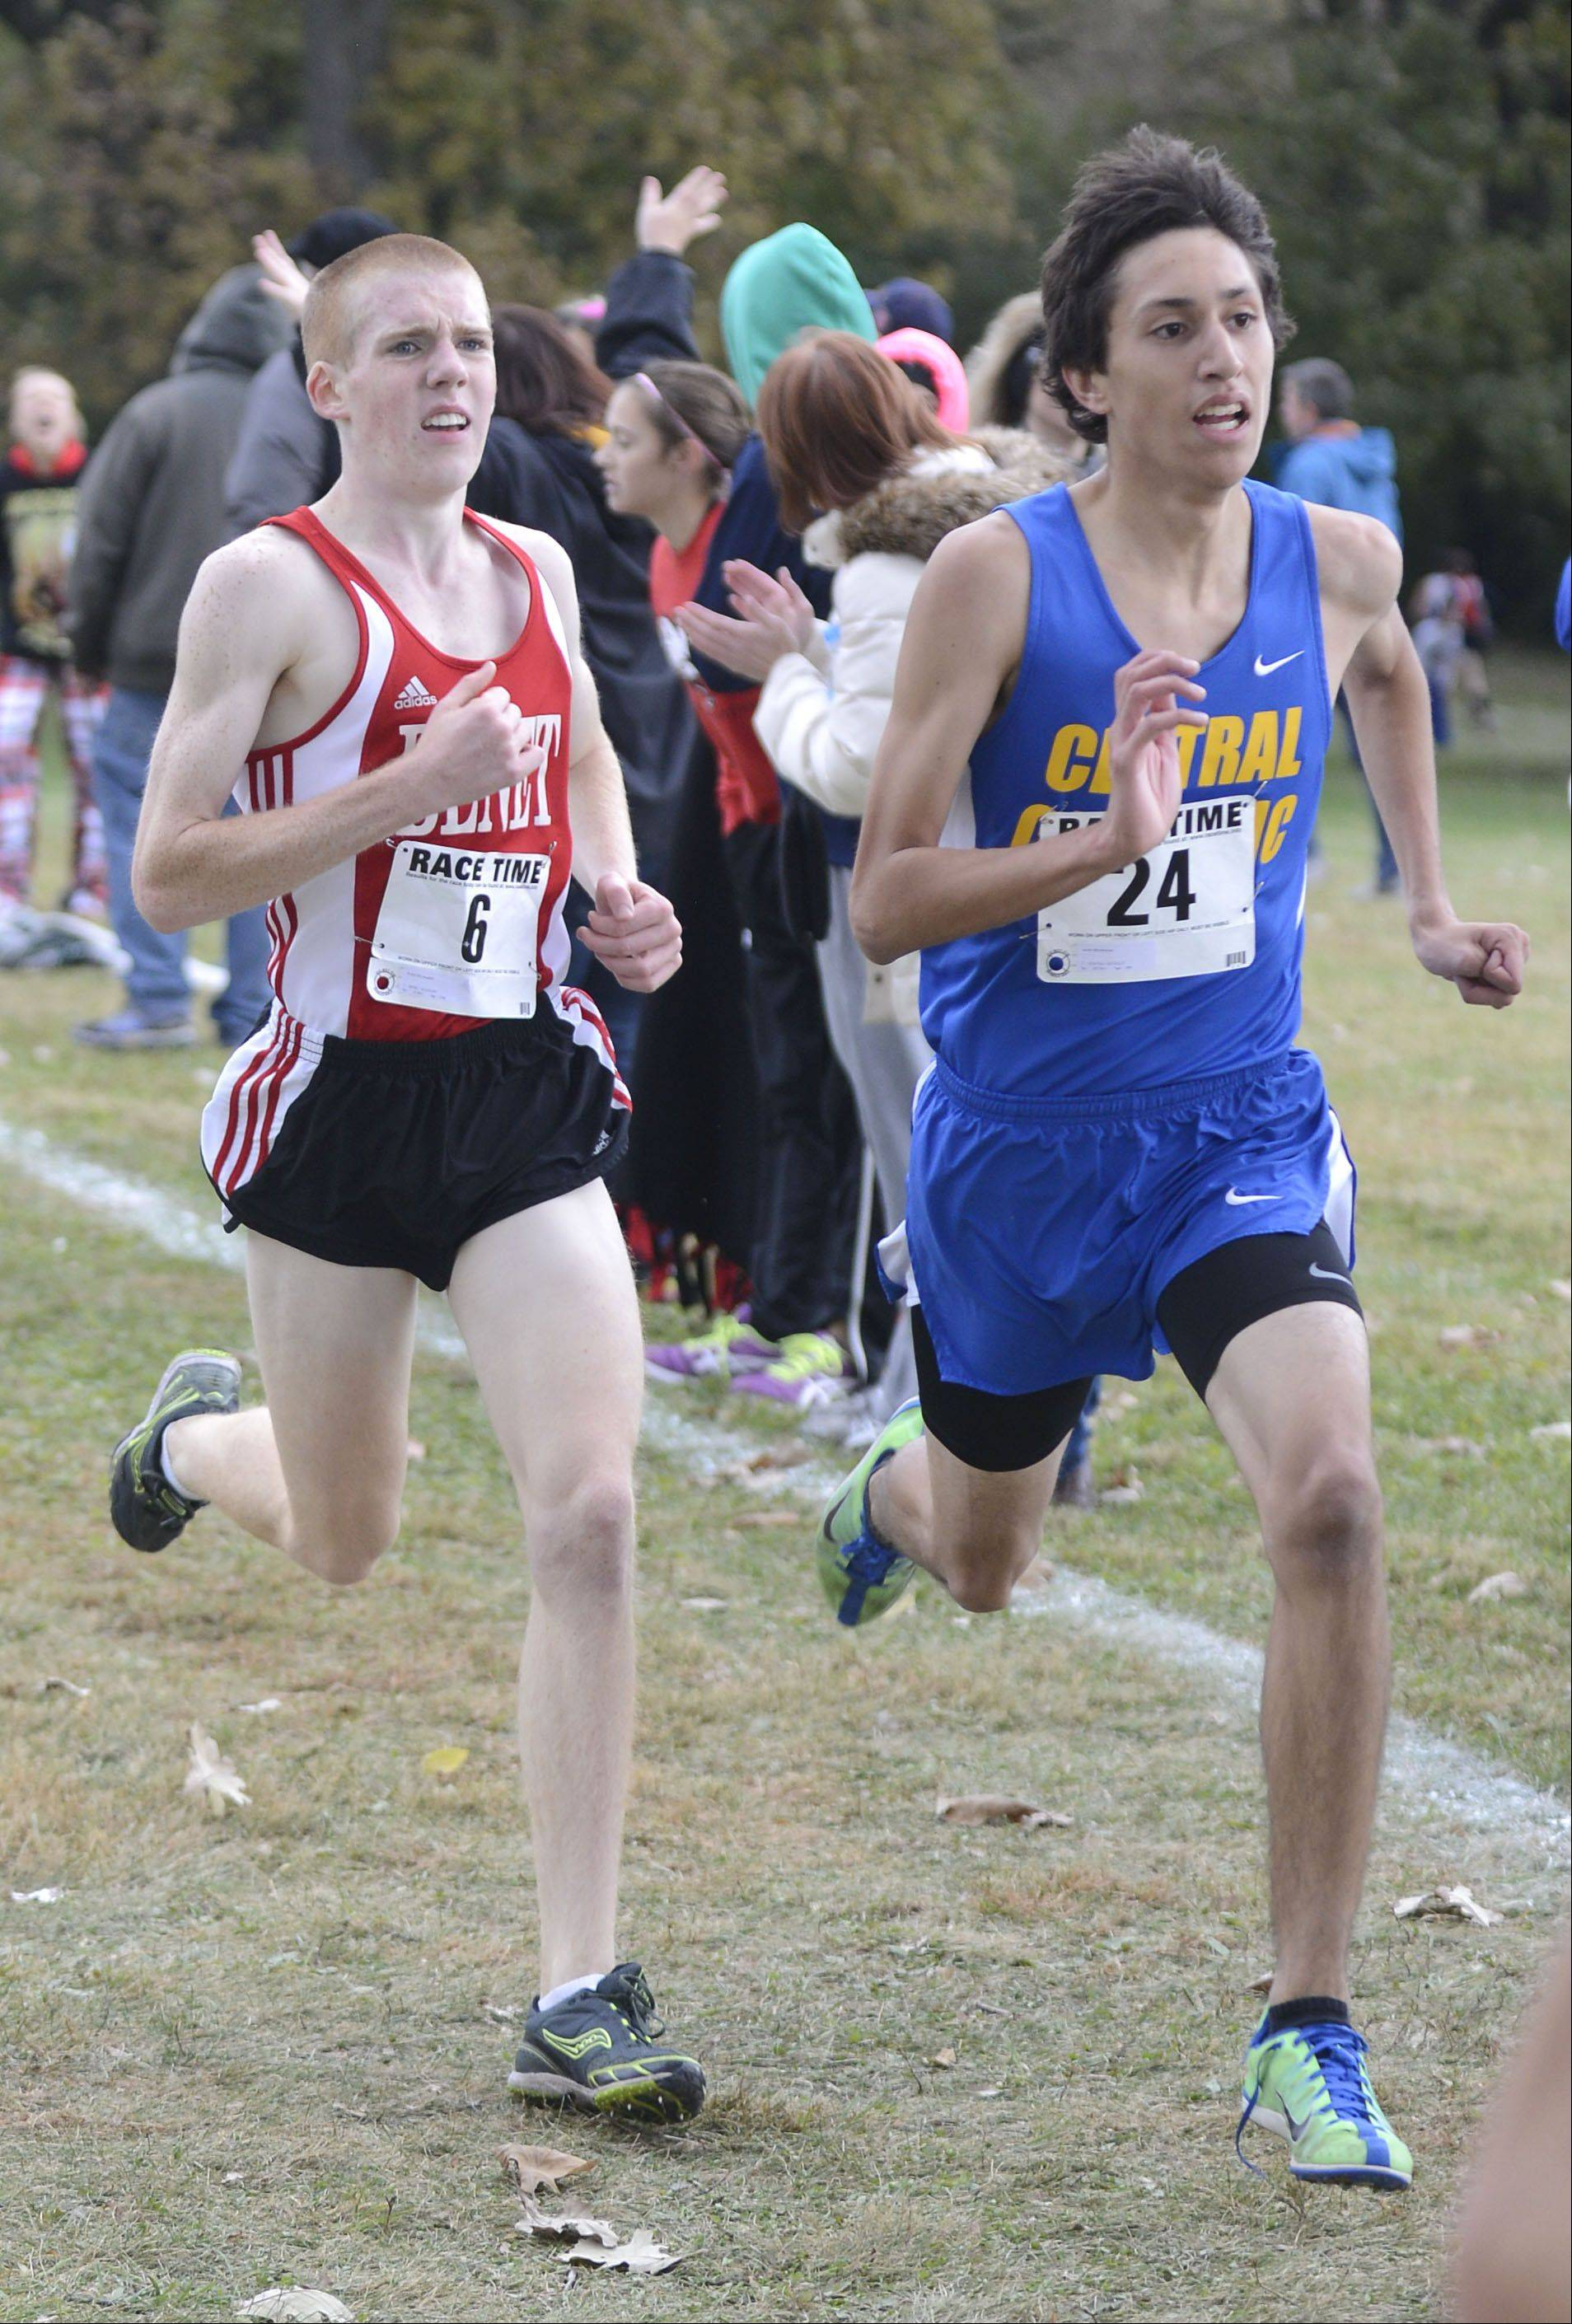 Benet Academy's Brady McLaughlin and Aurora Central Catholic's Javier Montelongo battle to the finish line in the Class 2A cross country regional on Saturday, October 26. Montelongo took 11th place and McLaughlin took 14th.